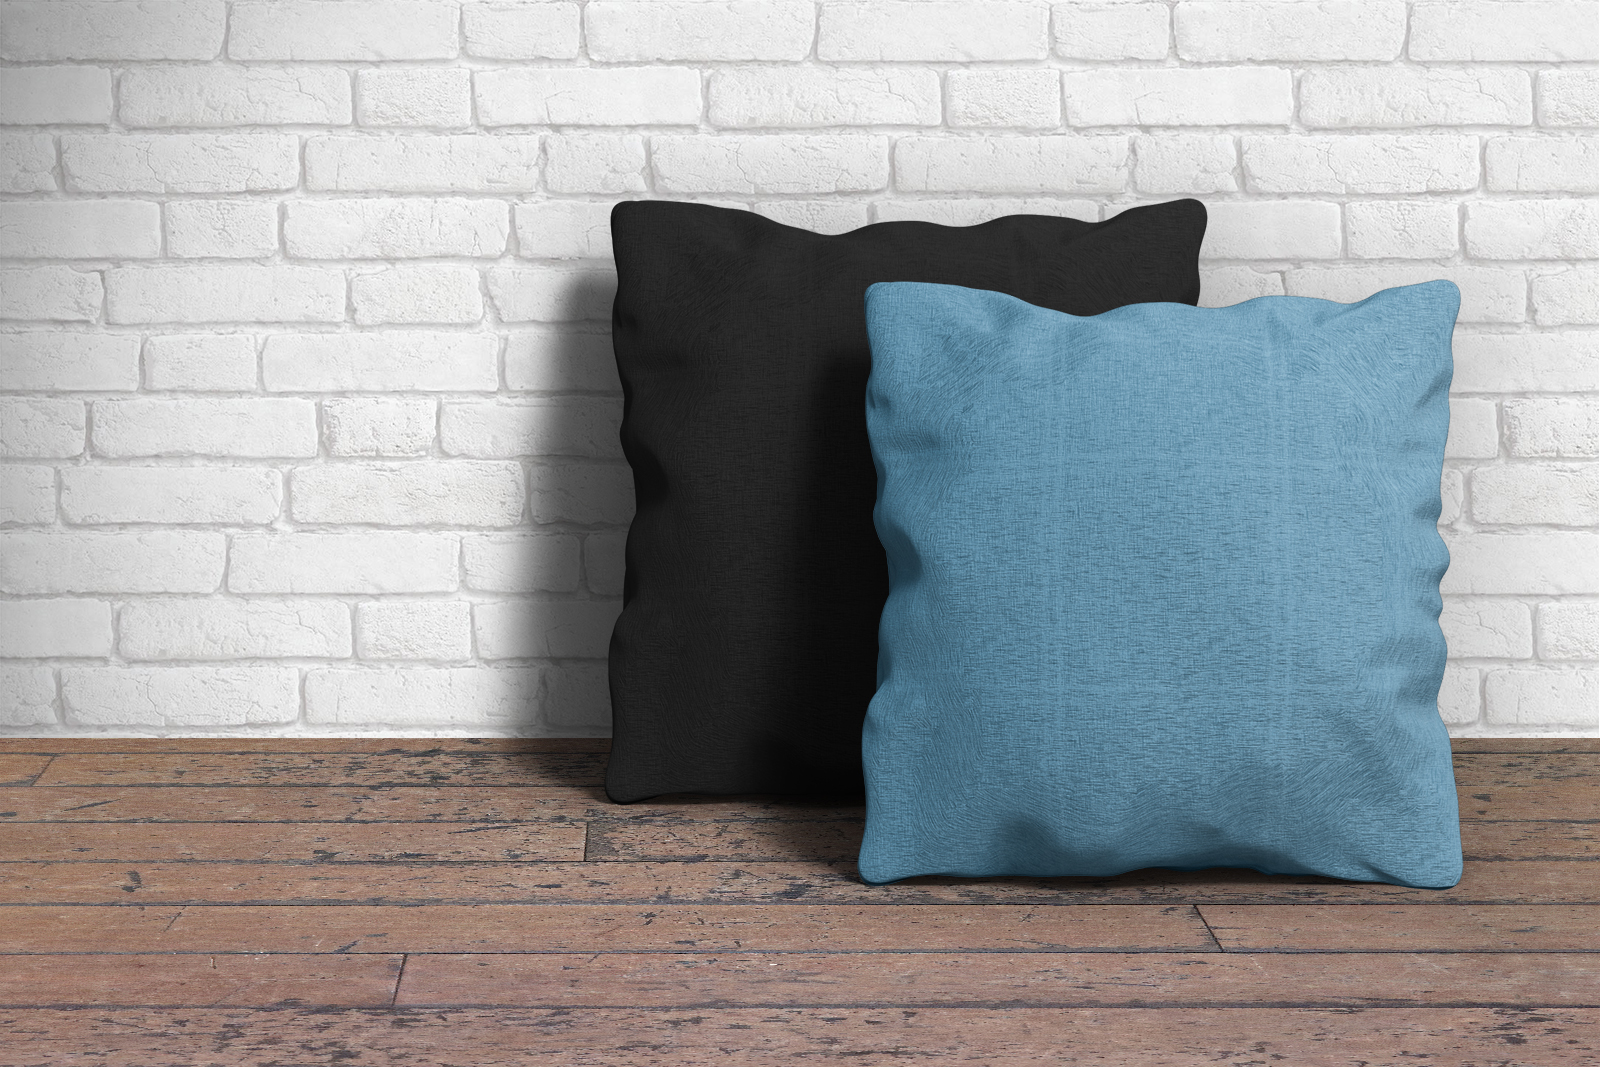 Pillow Mockup PSD Templates